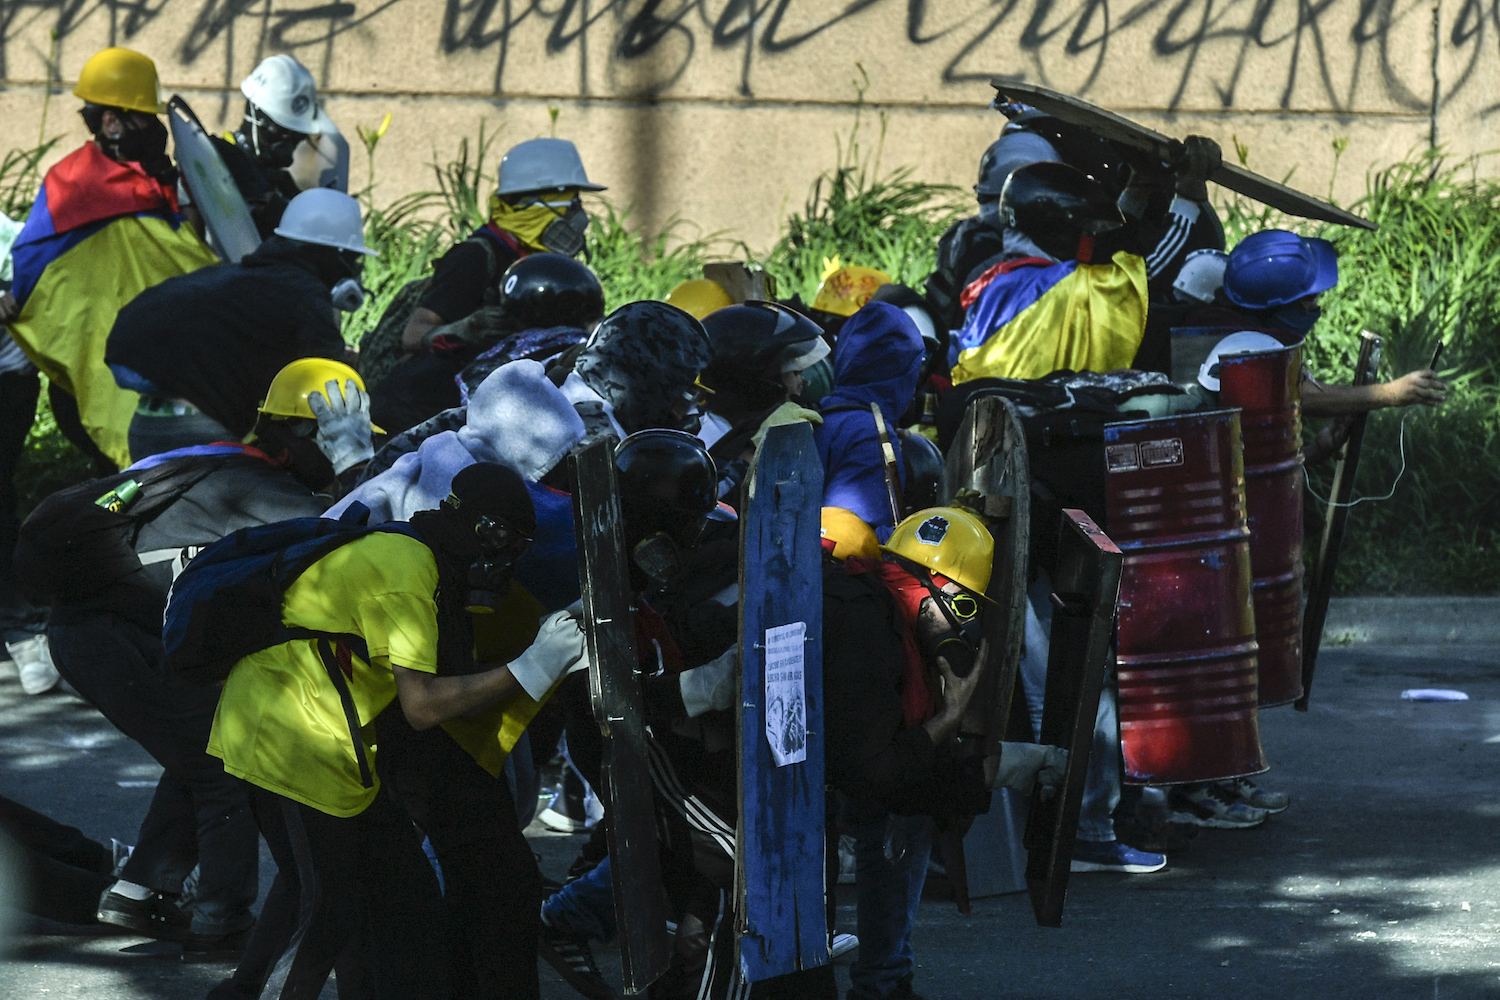 Demonstrators use makeshift shields as they clash with riot police during a new protest against the government in Medellin, Colombia, on June 16.